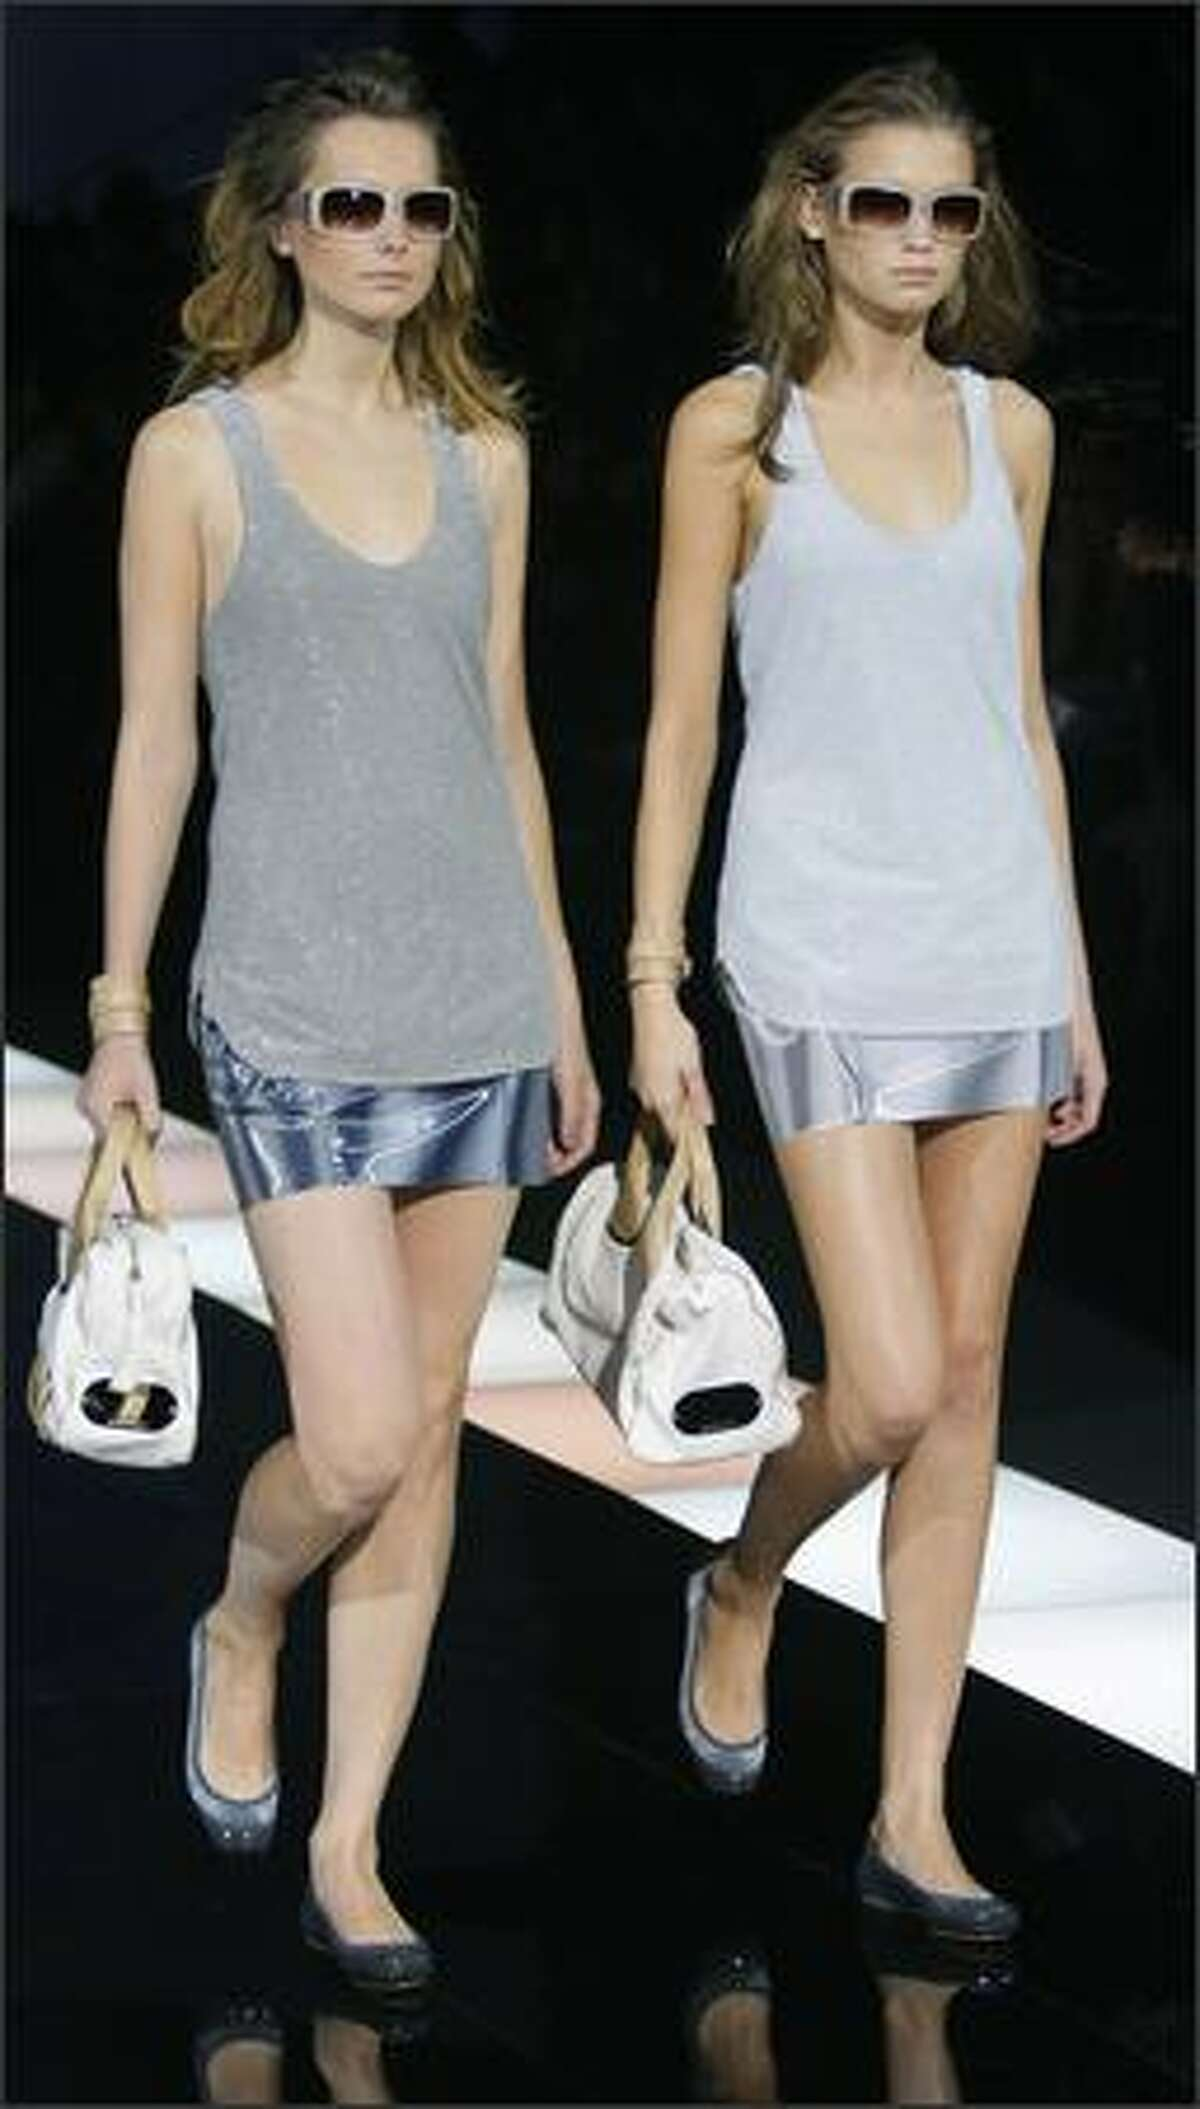 Model present creations by Italian designer Giorgio Armani for Emporio Armani during the Spring/Summer 2008 collections of the Milan ready-to-wear fashion shows.